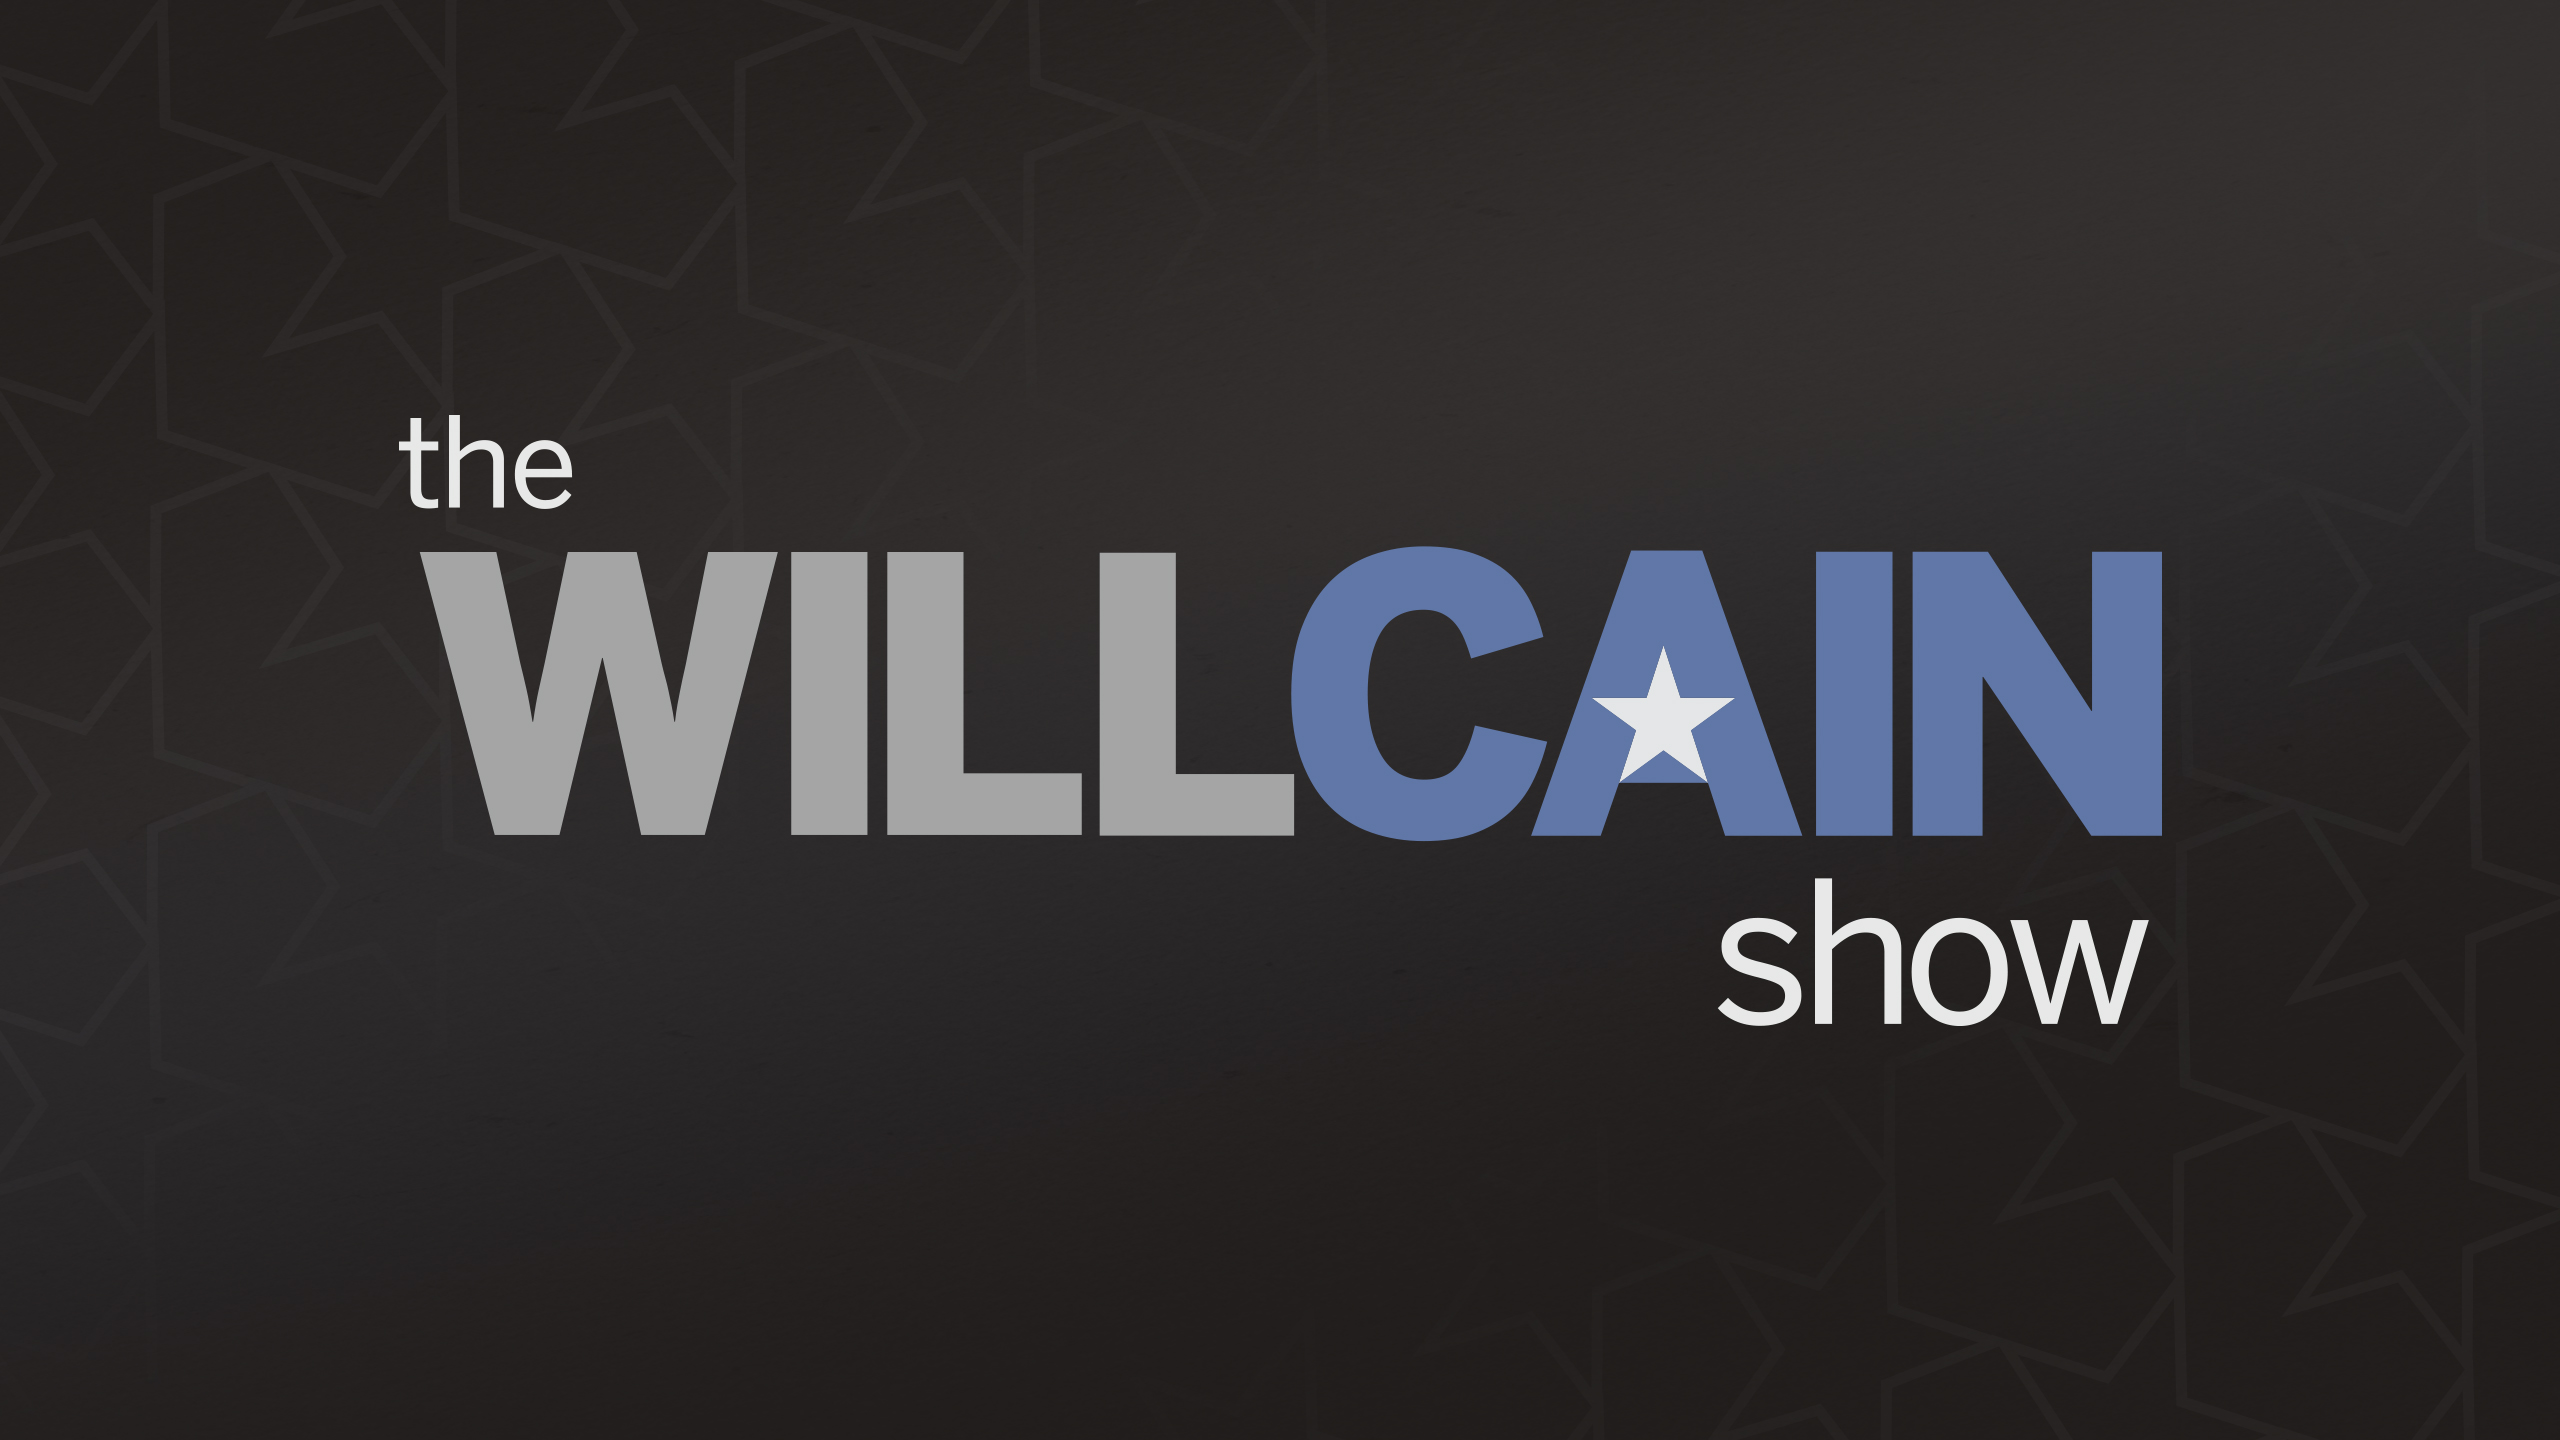 Mon, 11/12 - The Will Cain Show